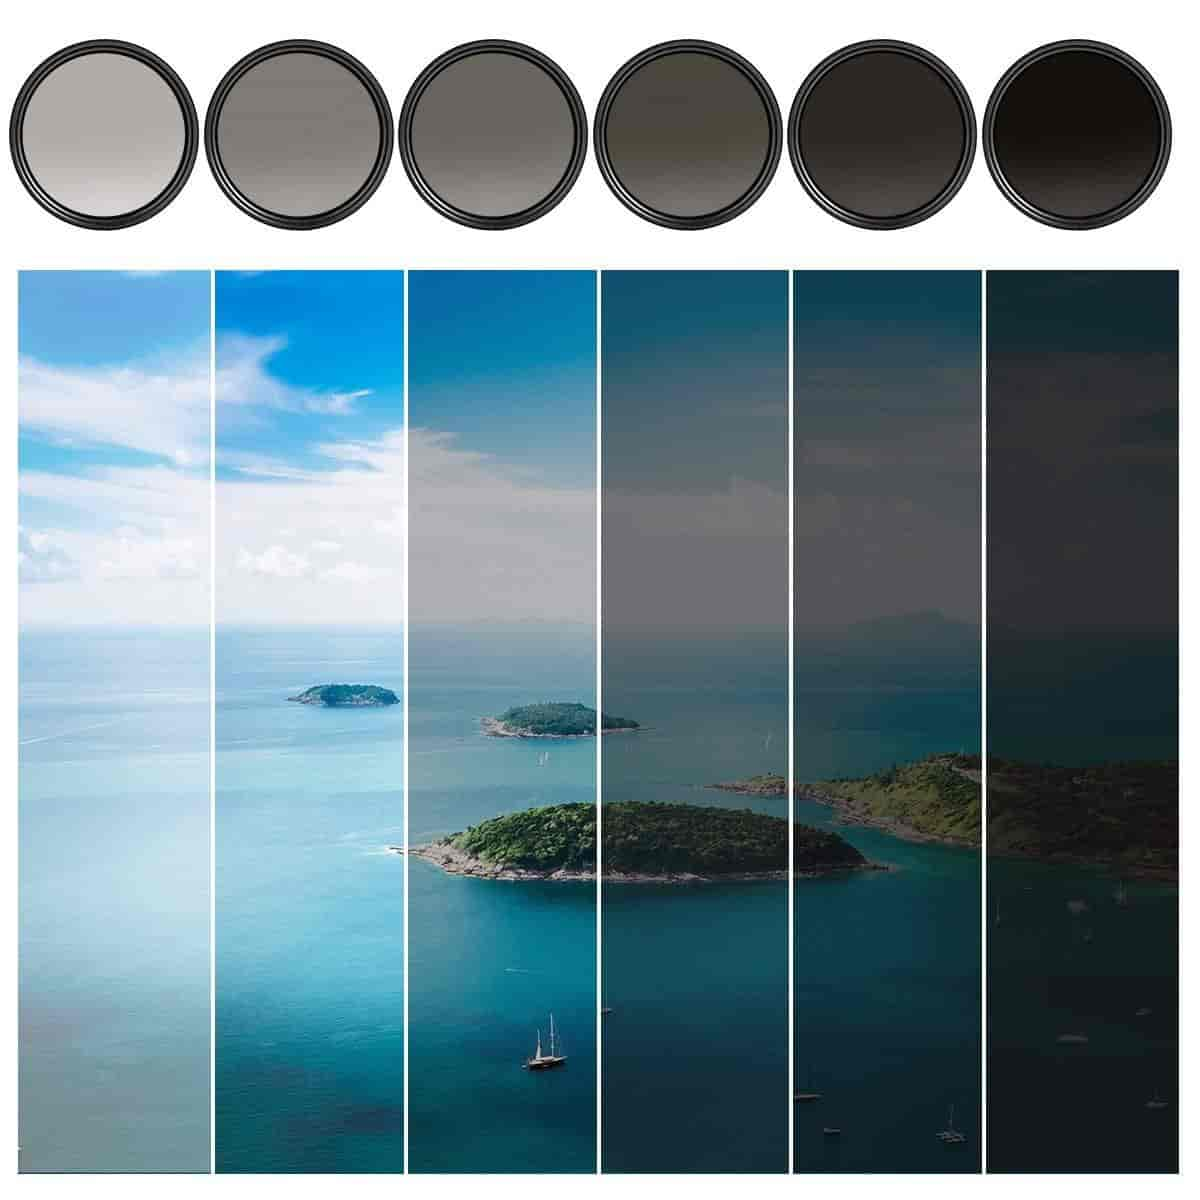 Löschdecke Test Lenzen, Filters K&f Concept 58mm Slim Variable Fader Nd2-nd400 Neutral Density Nd Filter Adju... Co